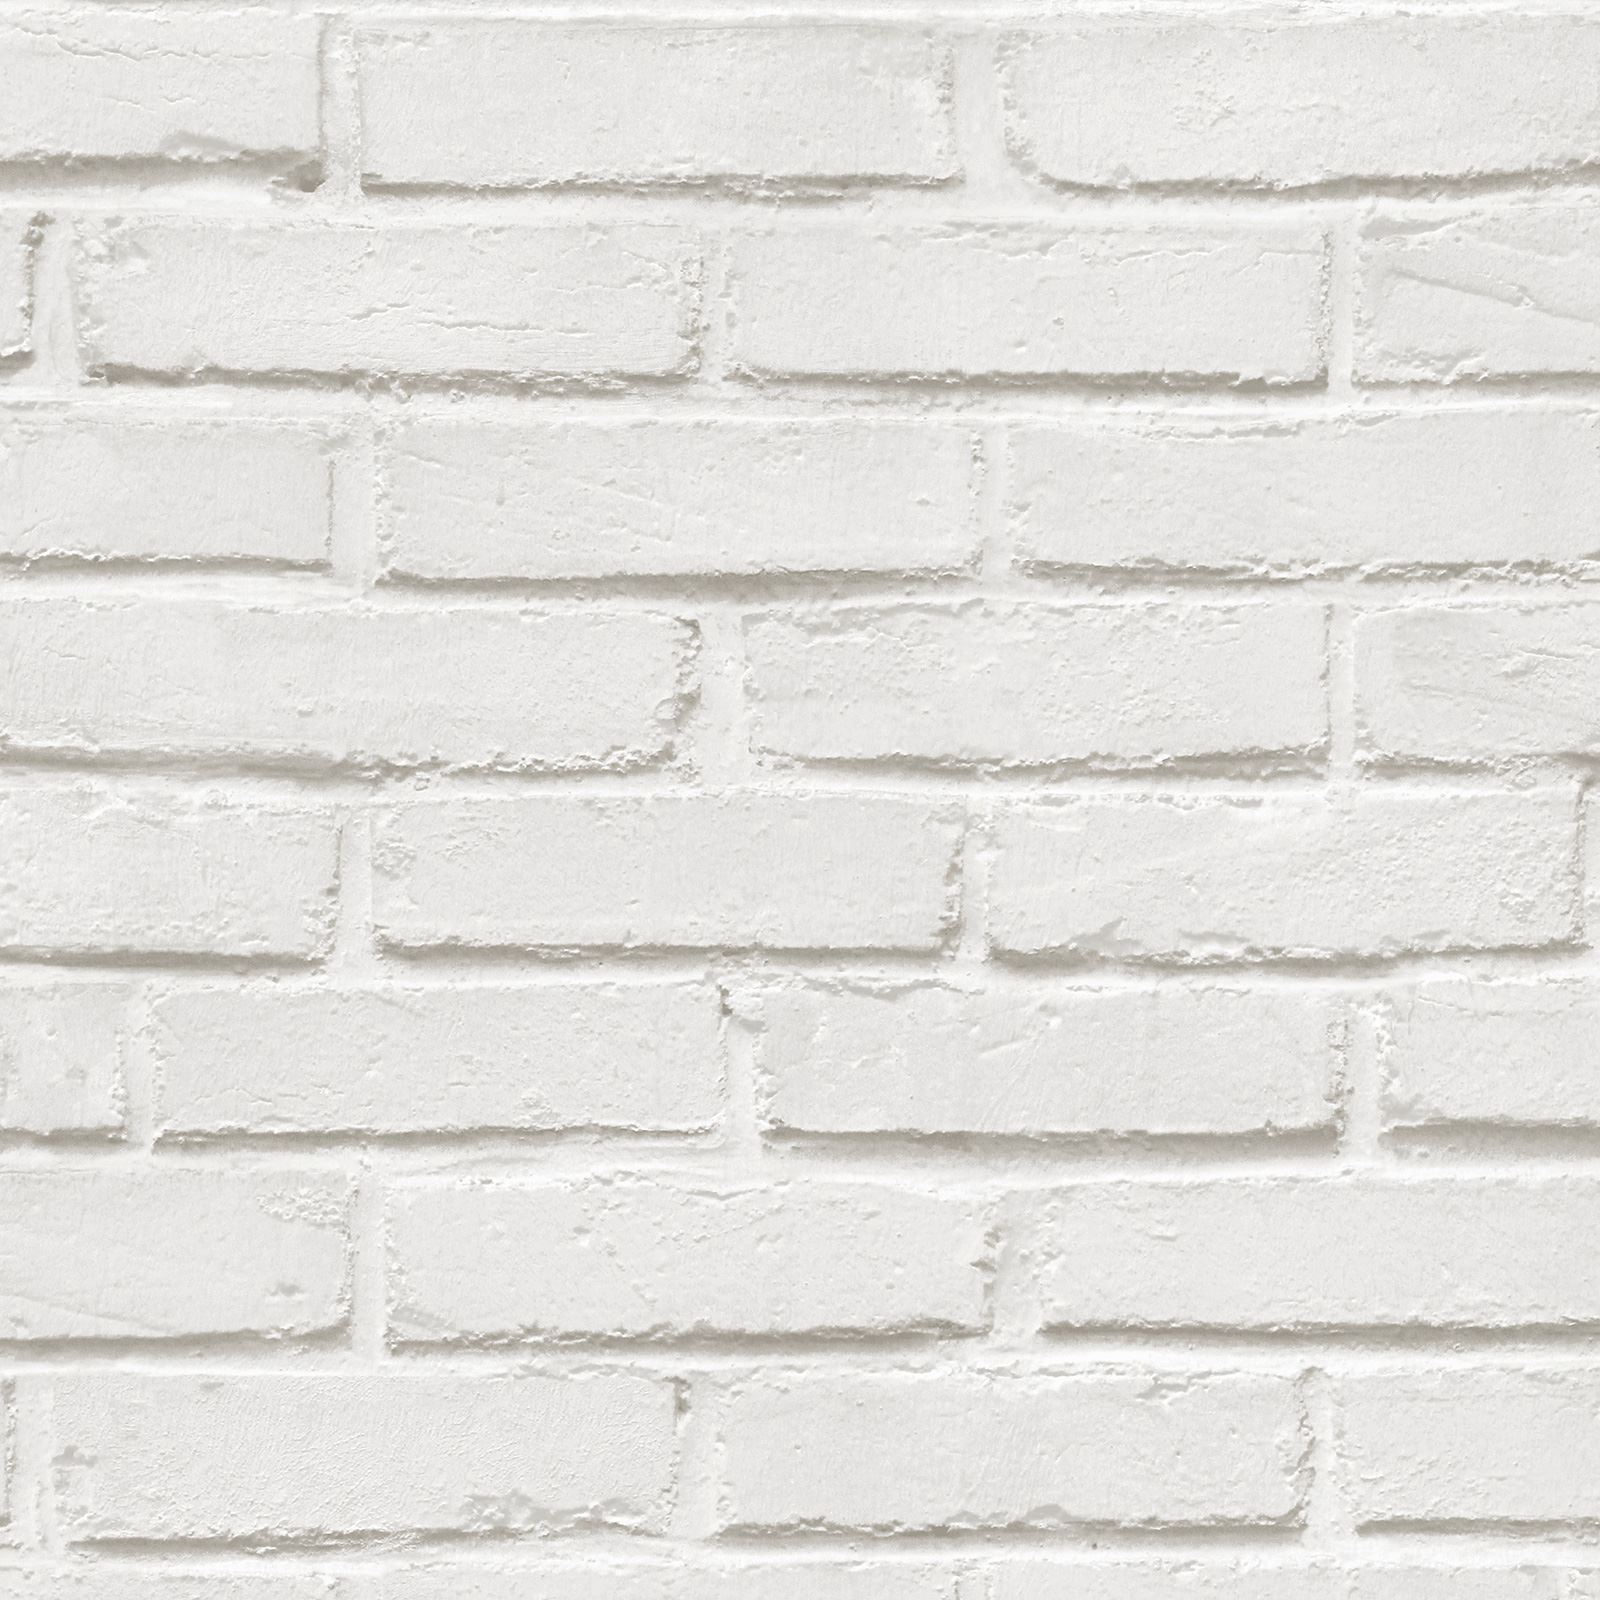 Rustic Brick Wall Wallpaper White 575319 Ugepa